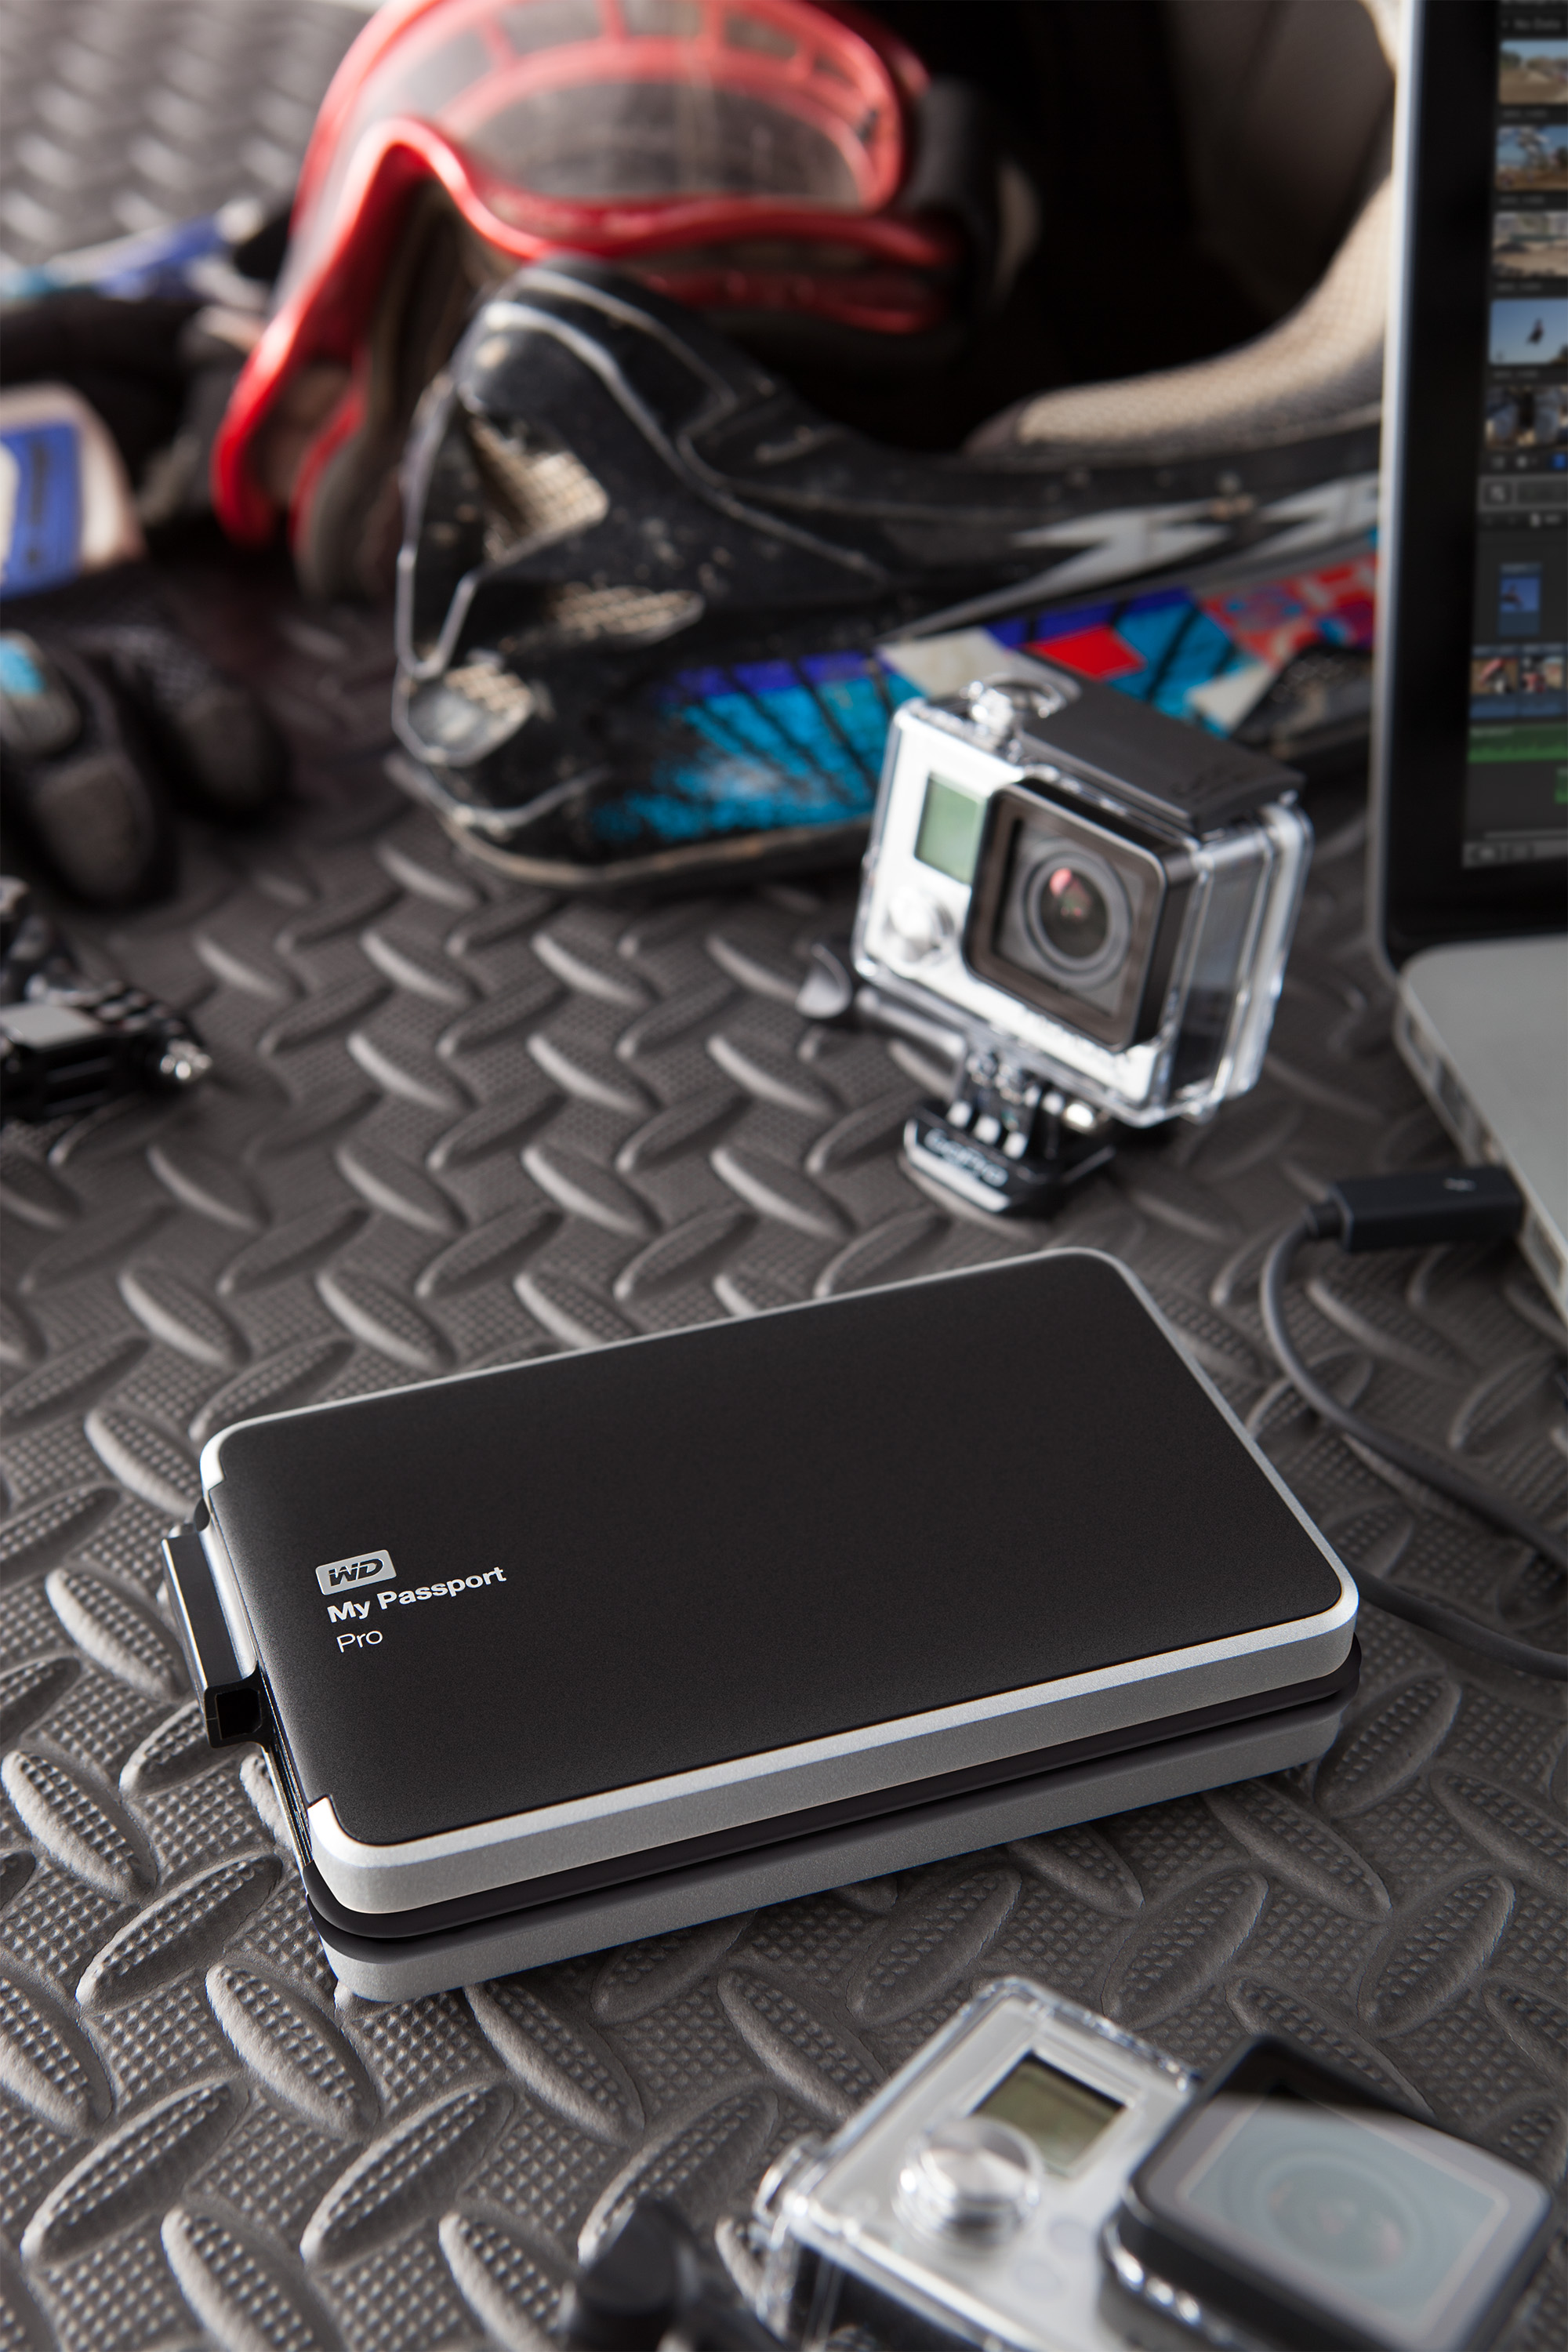 Thunderstruck! We check out the astounding Thunderbolt powered Western Digital My Passport Pro!